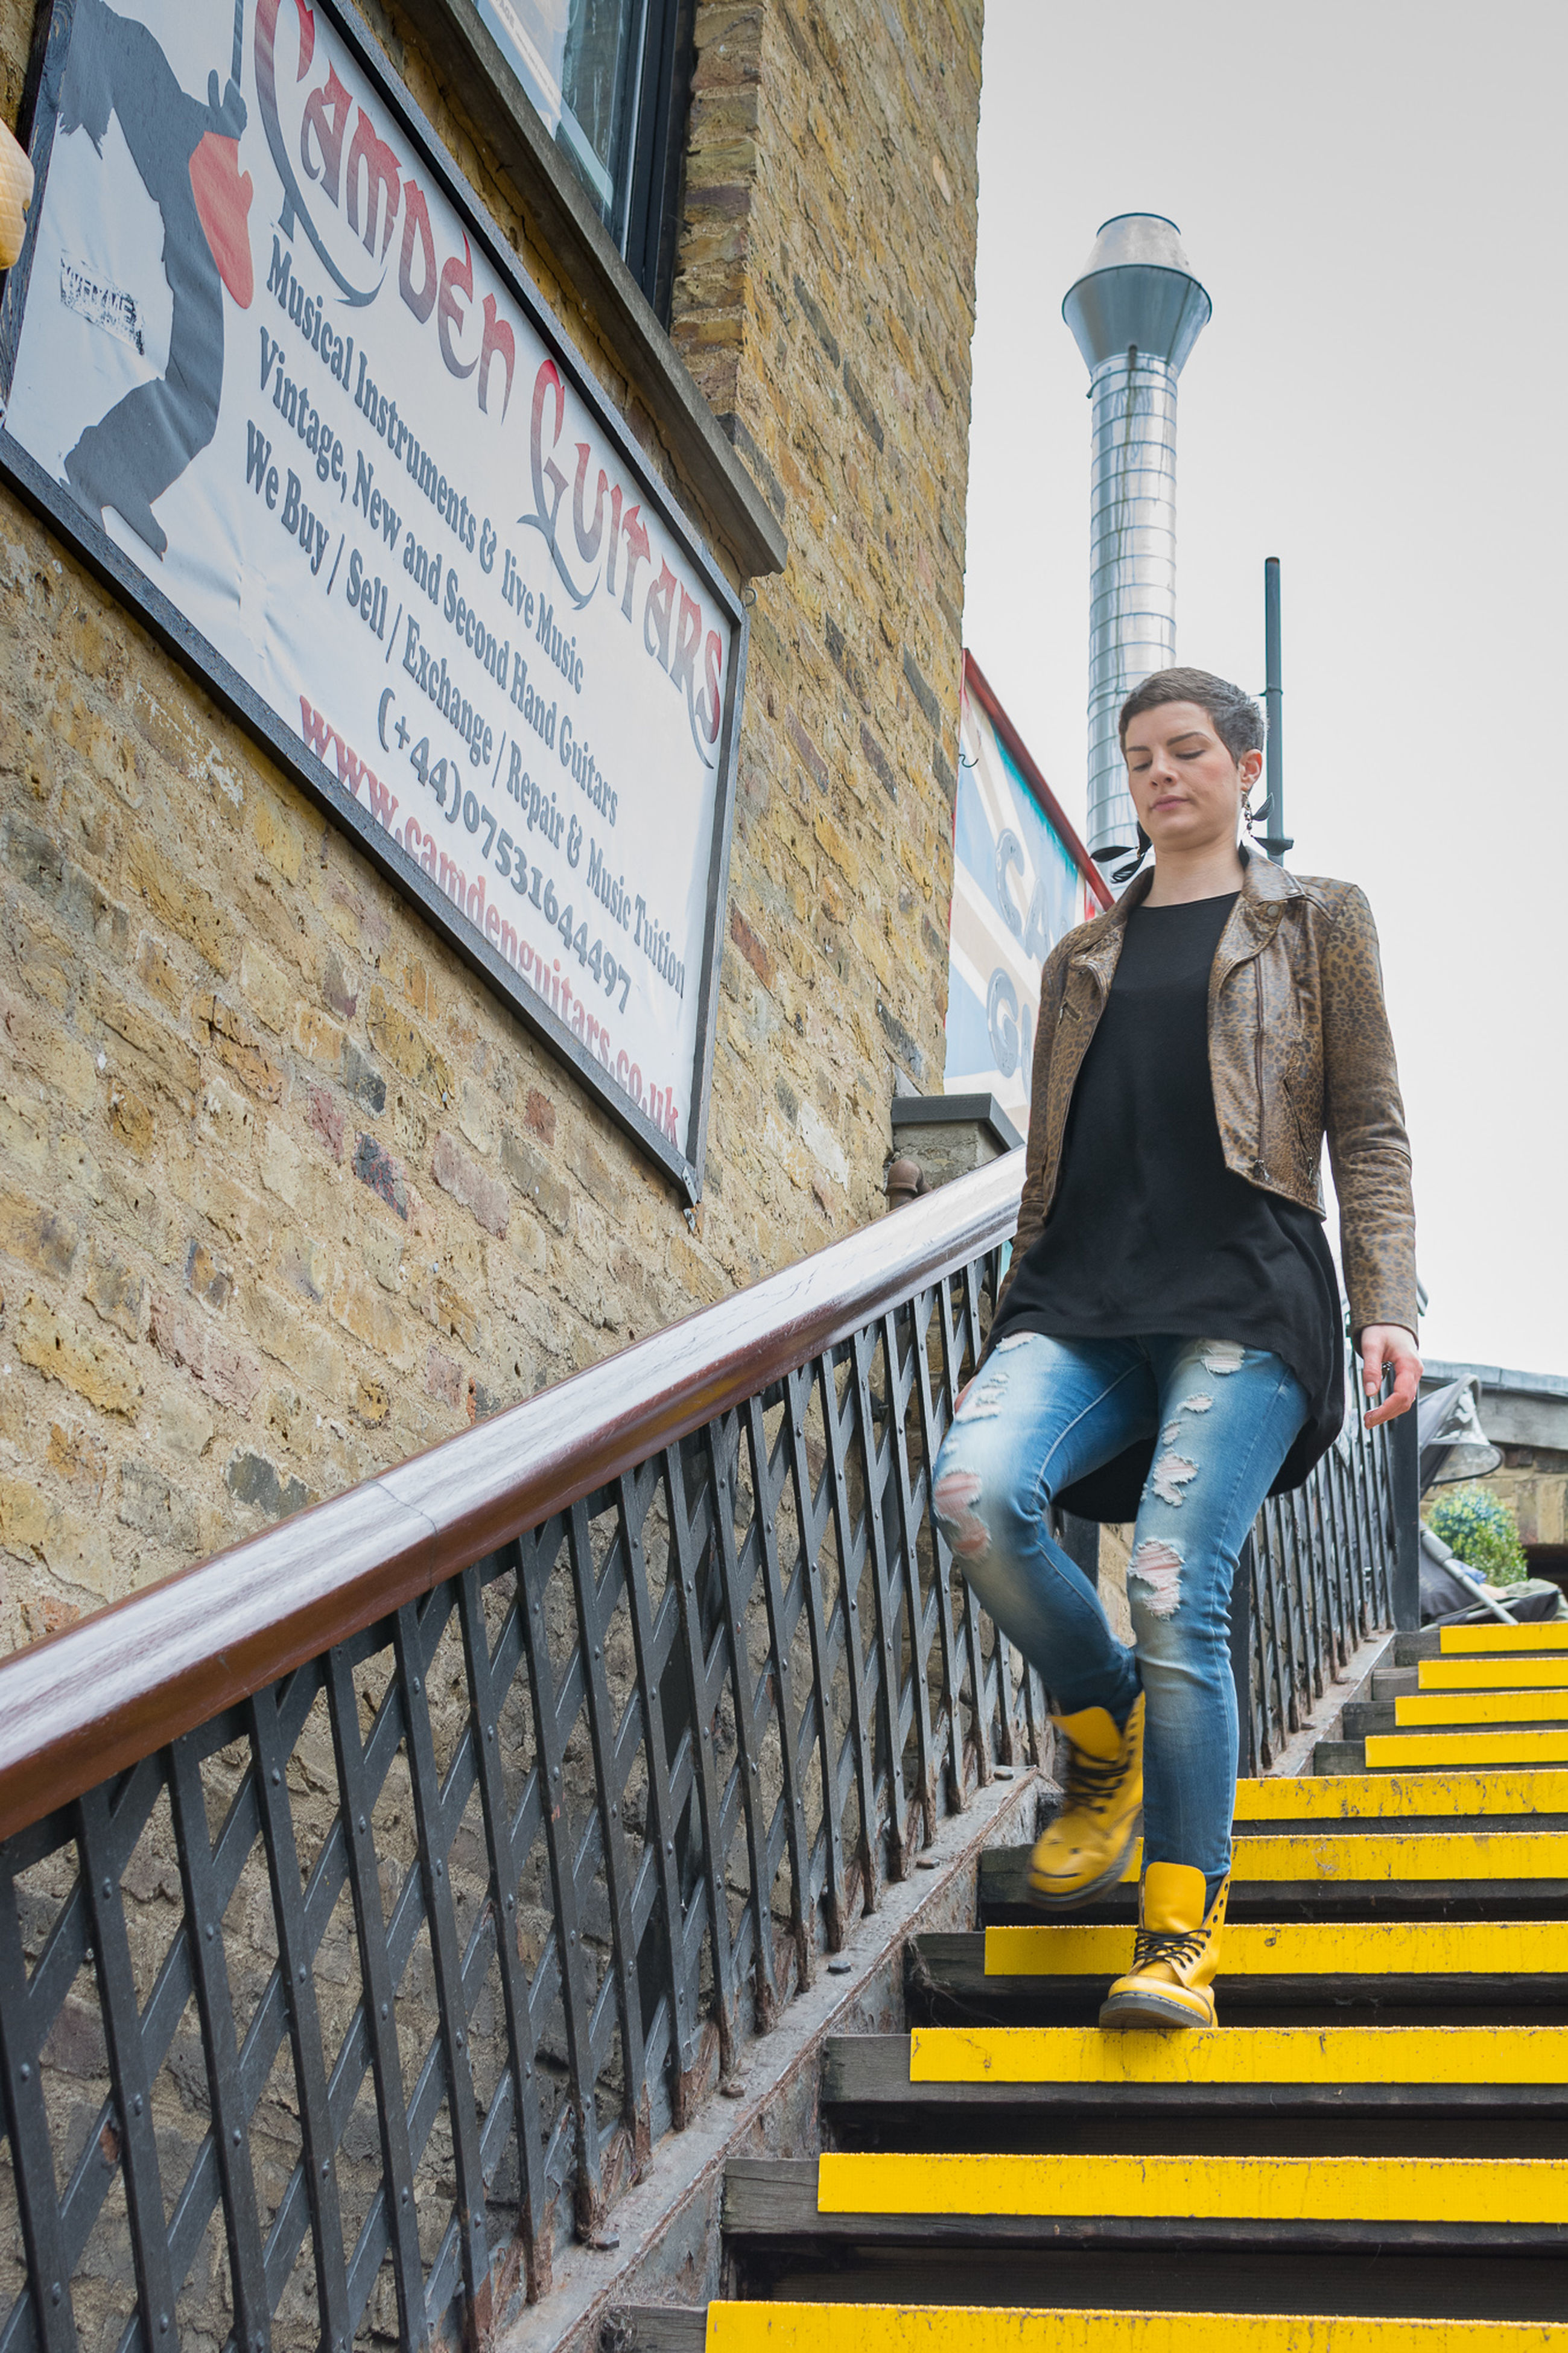 lifestyles, full length, railing, built structure, casual clothing, architecture, standing, building exterior, steps, young adult, leisure activity, communication, person, text, three quarter length, front view, day, young men